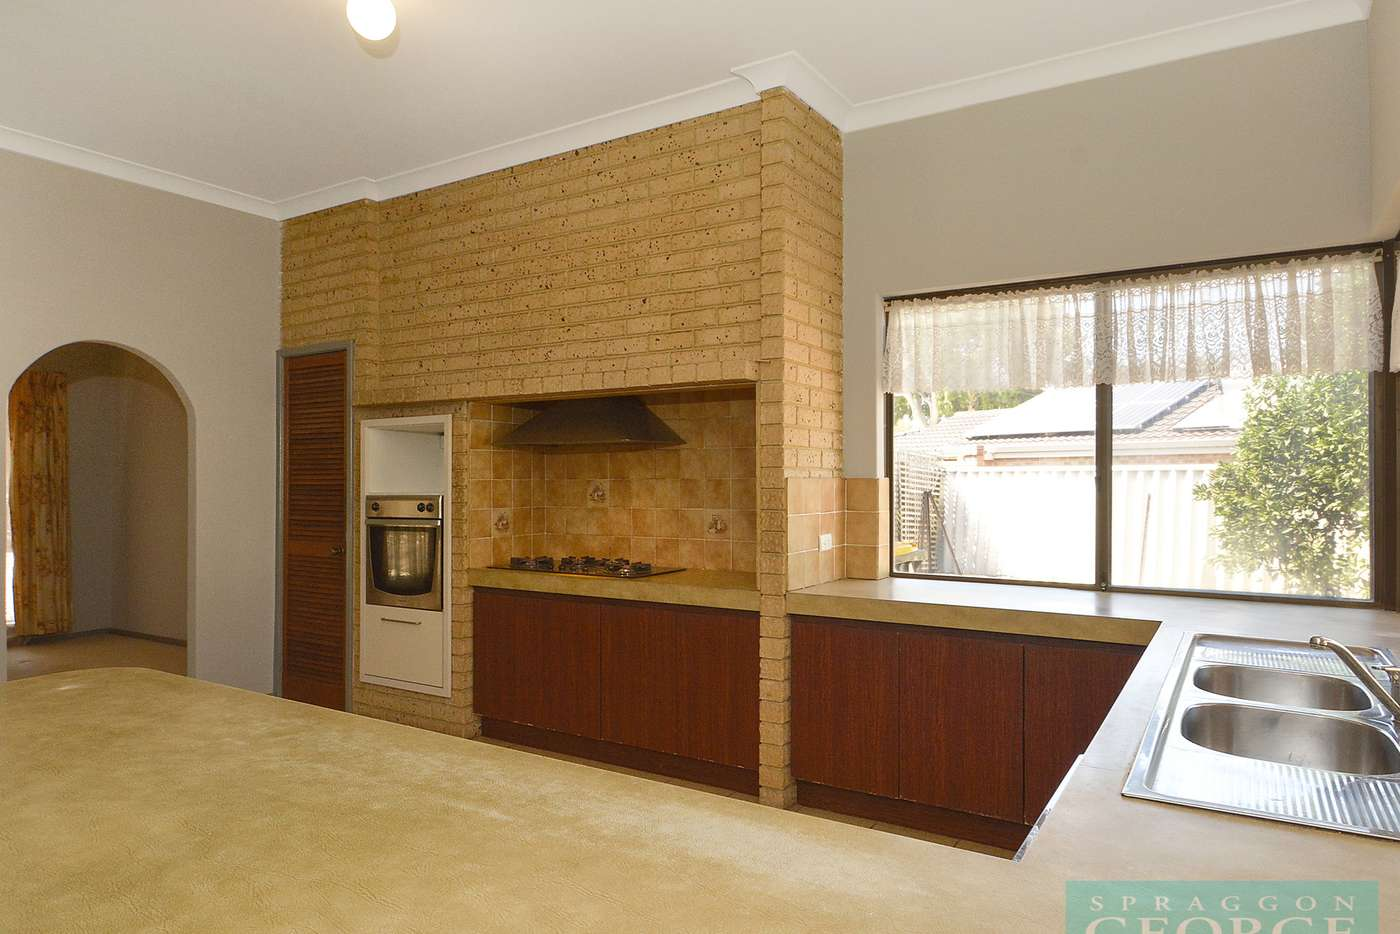 Seventh view of Homely house listing, 38 Osmaston Road, Carine WA 6020